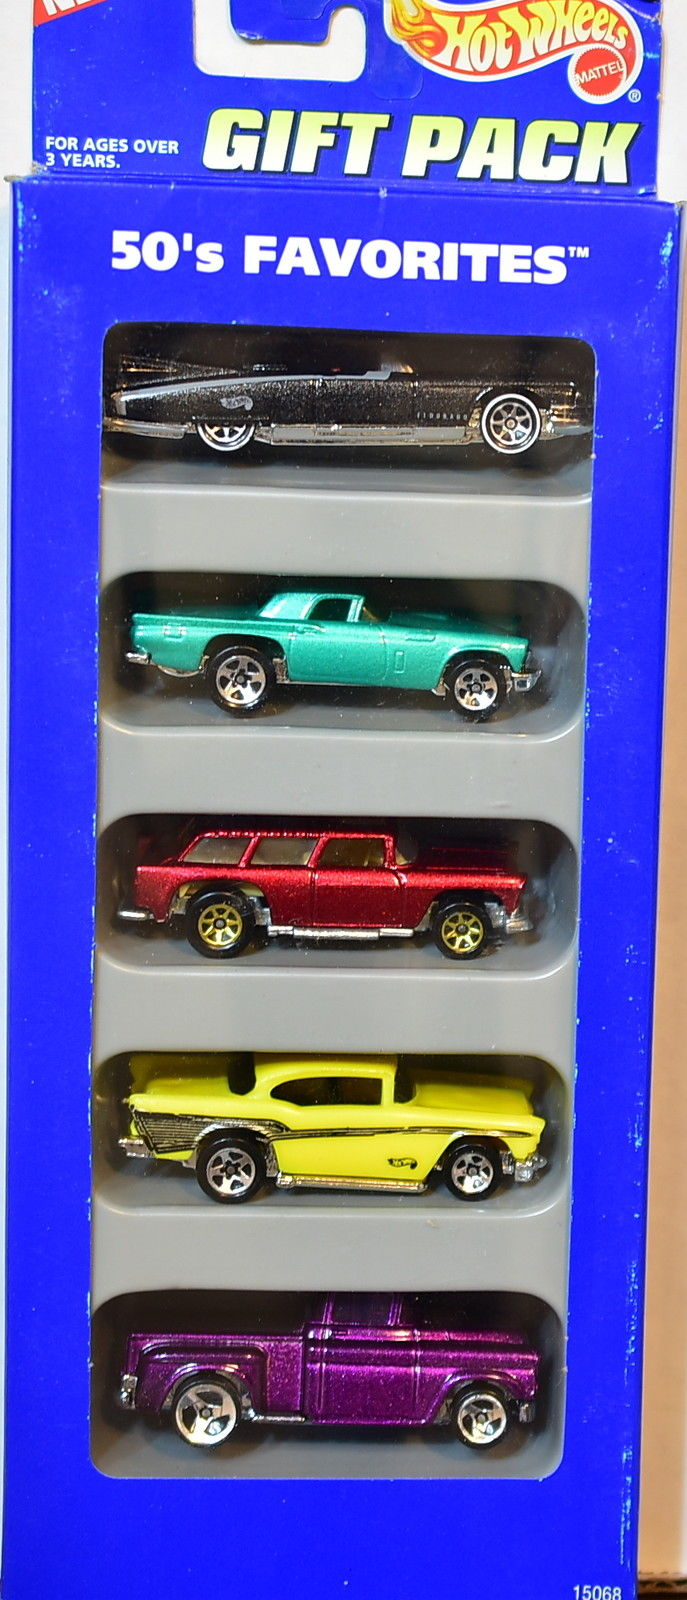 HOT WHEELS 1995 5 CAR GIFT PACK 50'S FAVORITES FLASHSIDER CHEVY CADILLAC